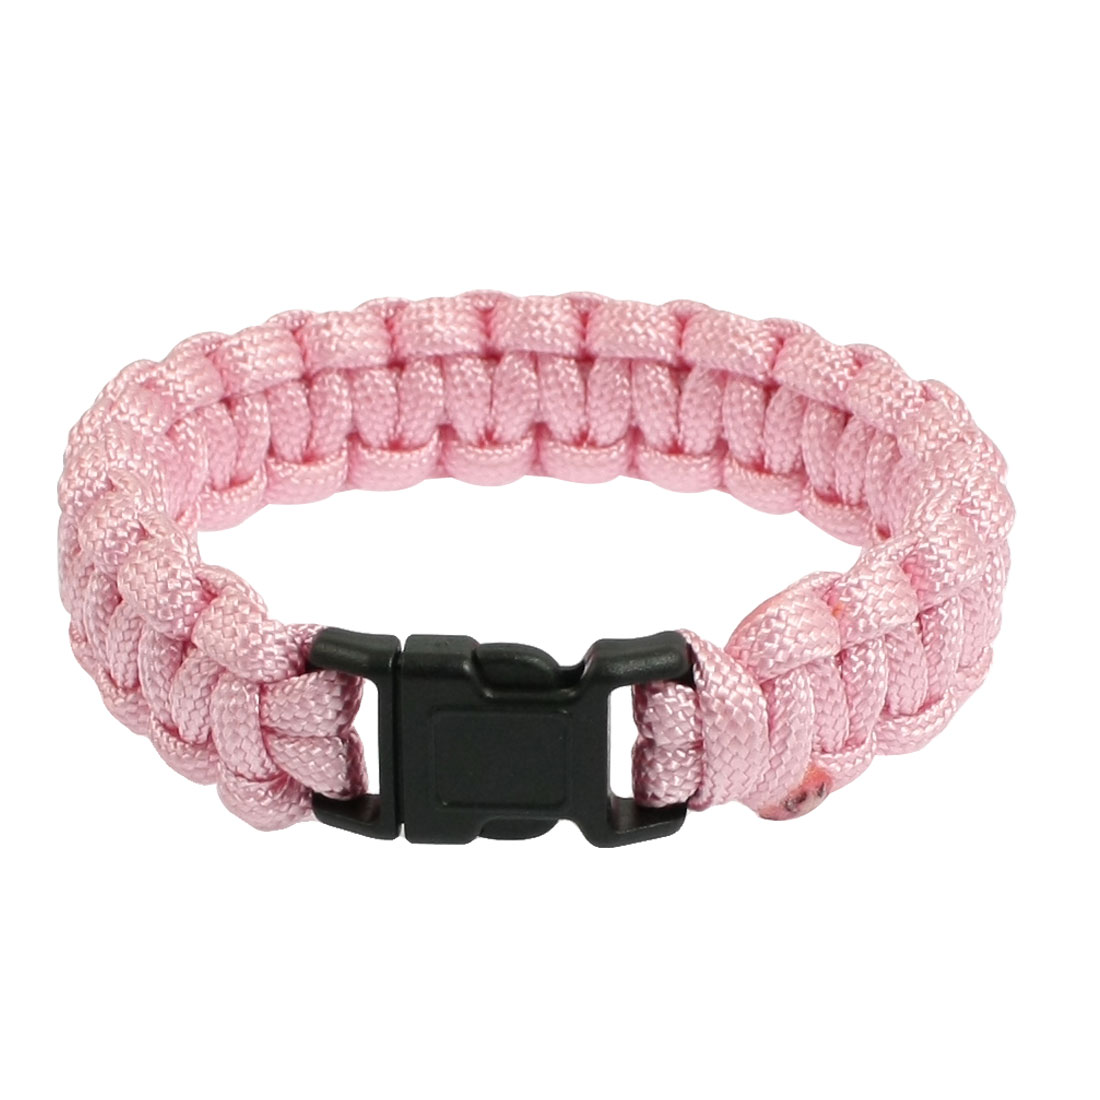 Plastic Whistle Buckle Pink Nylon Rescue Survival Bracelet 220Lbs